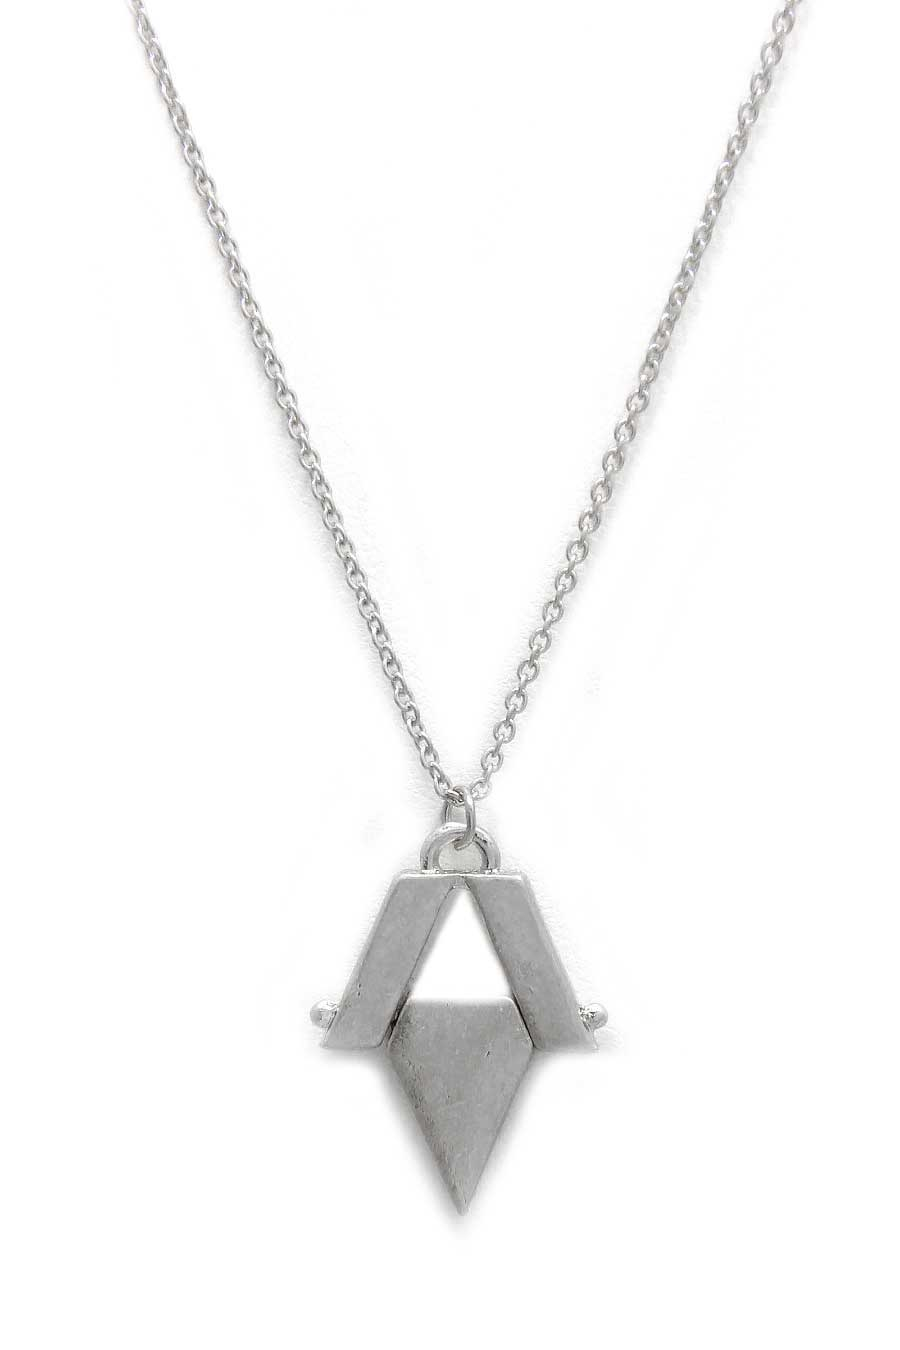 DIAMOND SHAPE NECKLACE - orangeshine.com